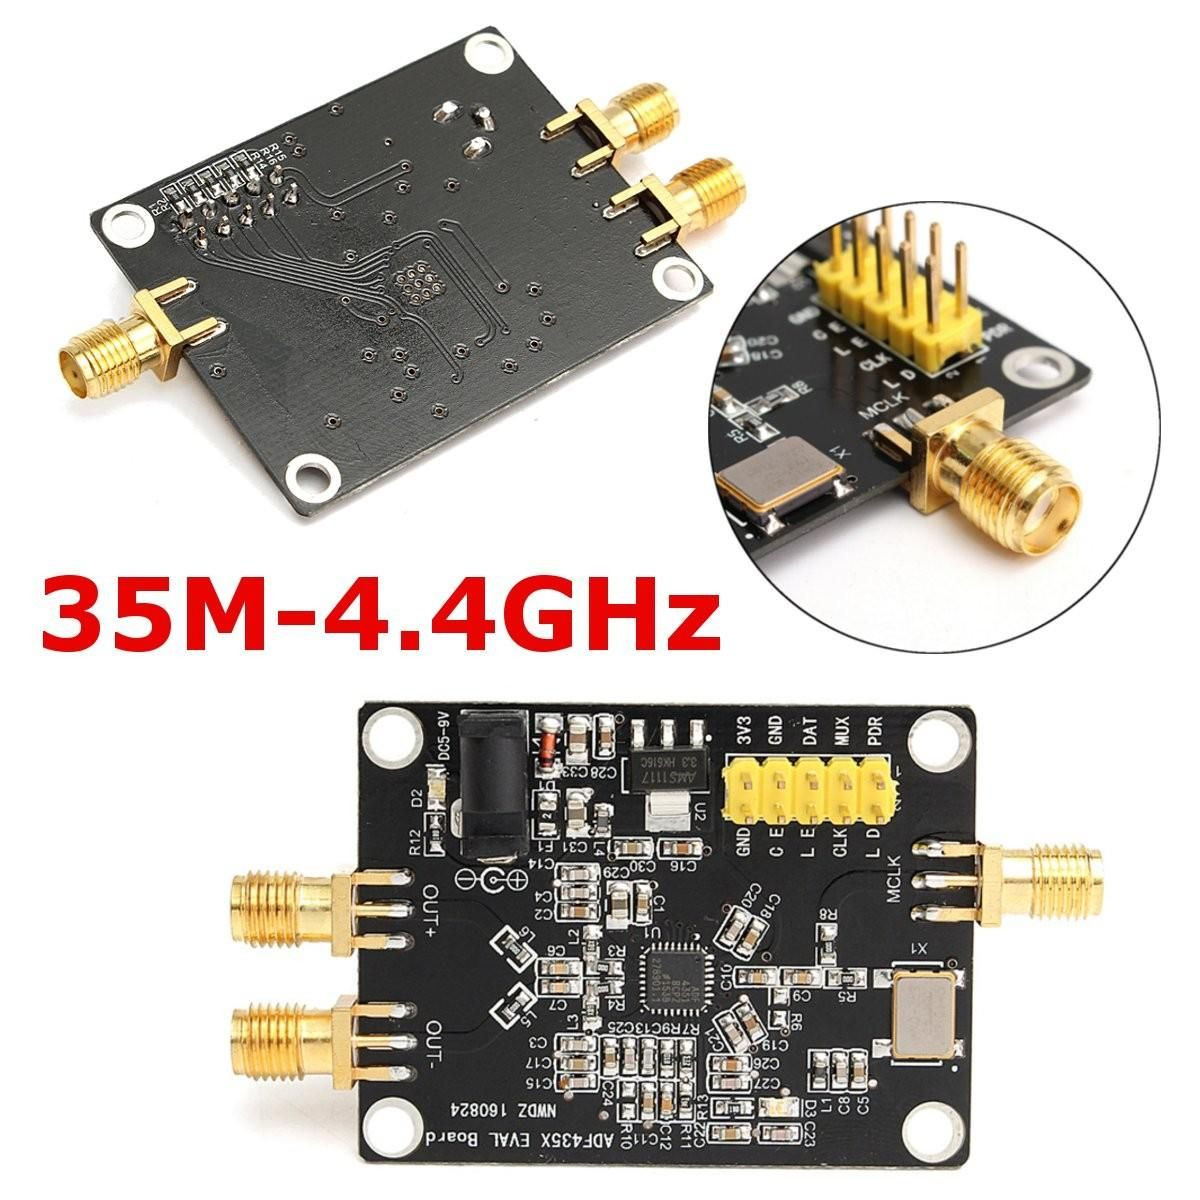 1PC NEW Arrival 35M-4.4GHz PLL RF Signal Source Frequency Synthesizer ADF4351 Development Board